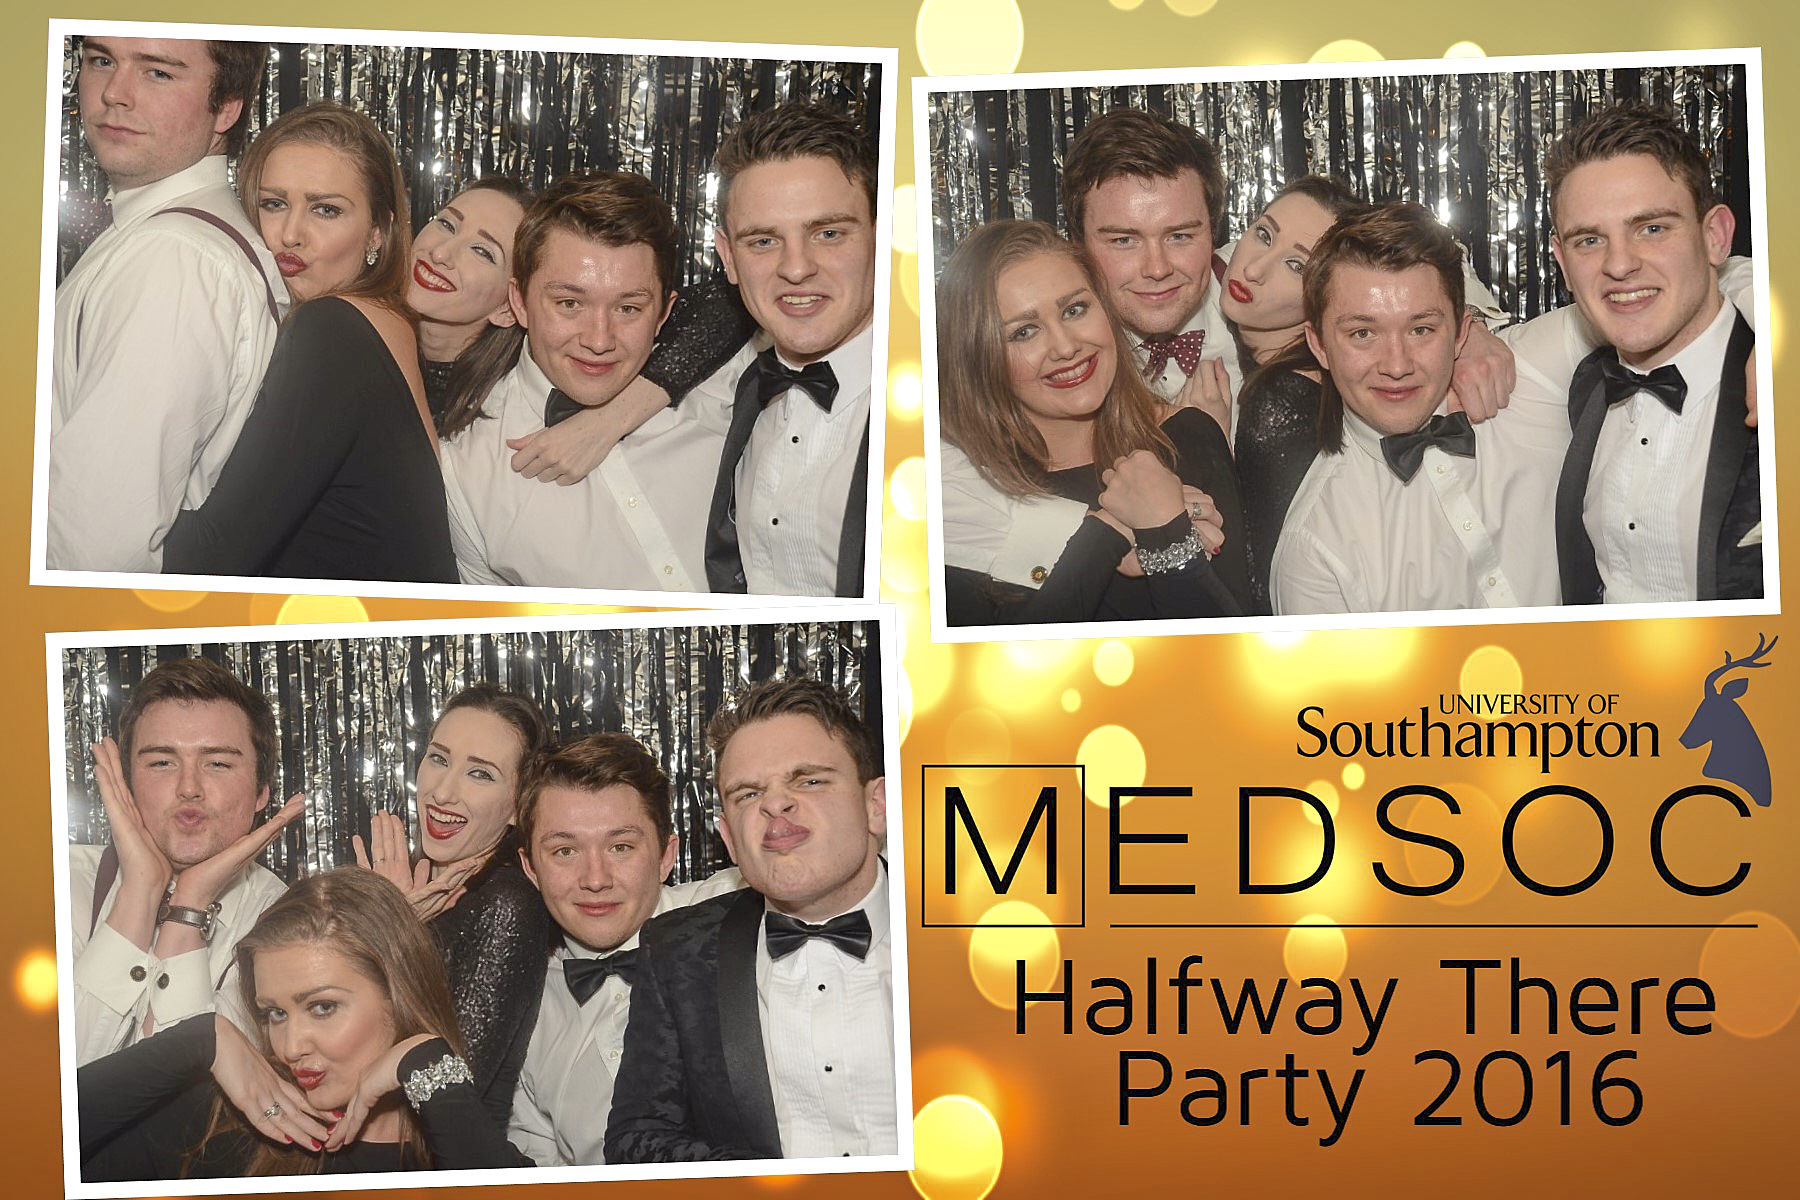 MedSoc Halfway There Party 2016 DS225246.jpg